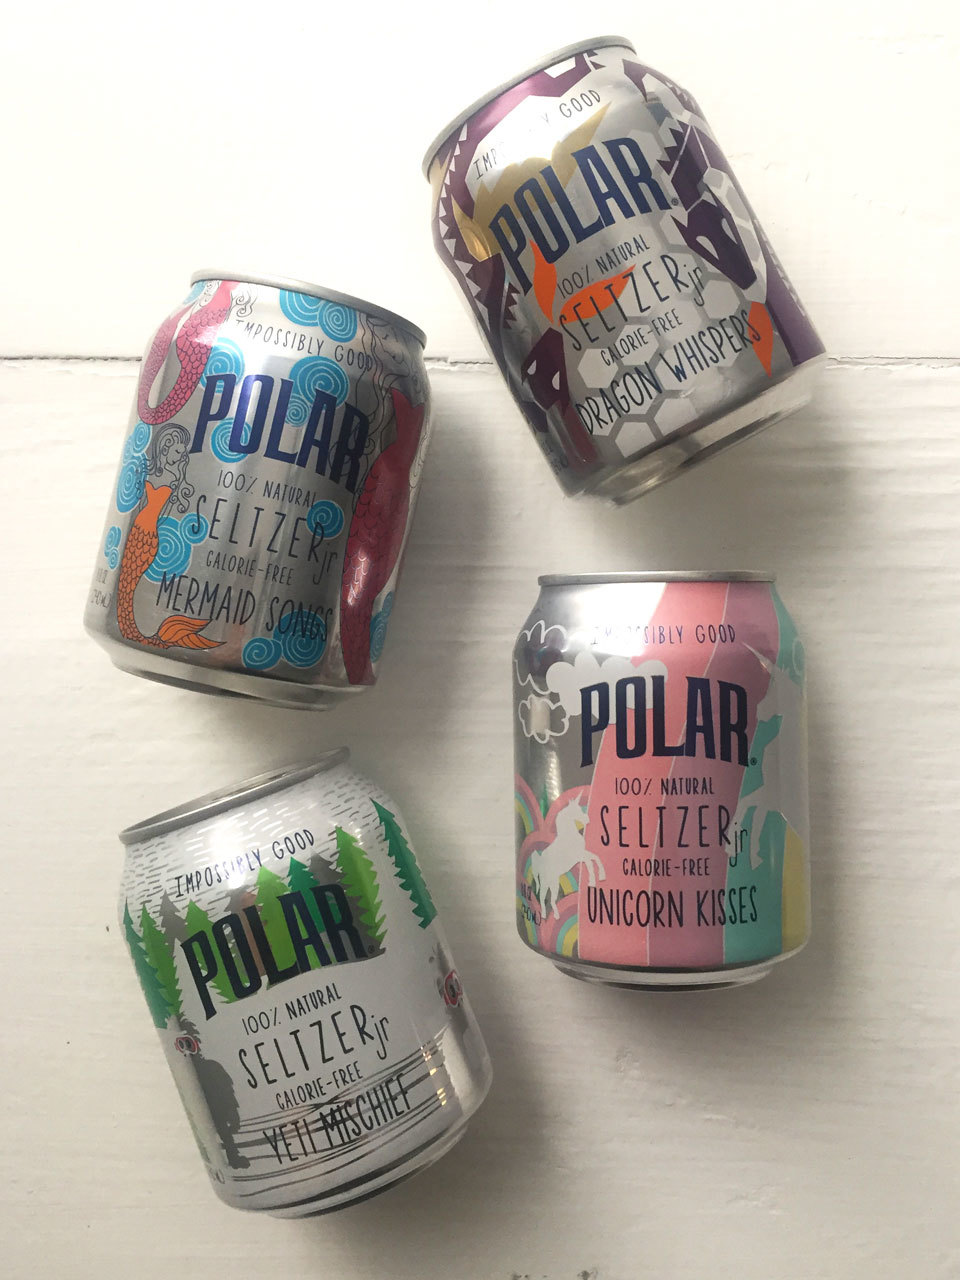 These New Seltzer Flavors Are Perfect and We're Kind of Losing Our Minds over Them